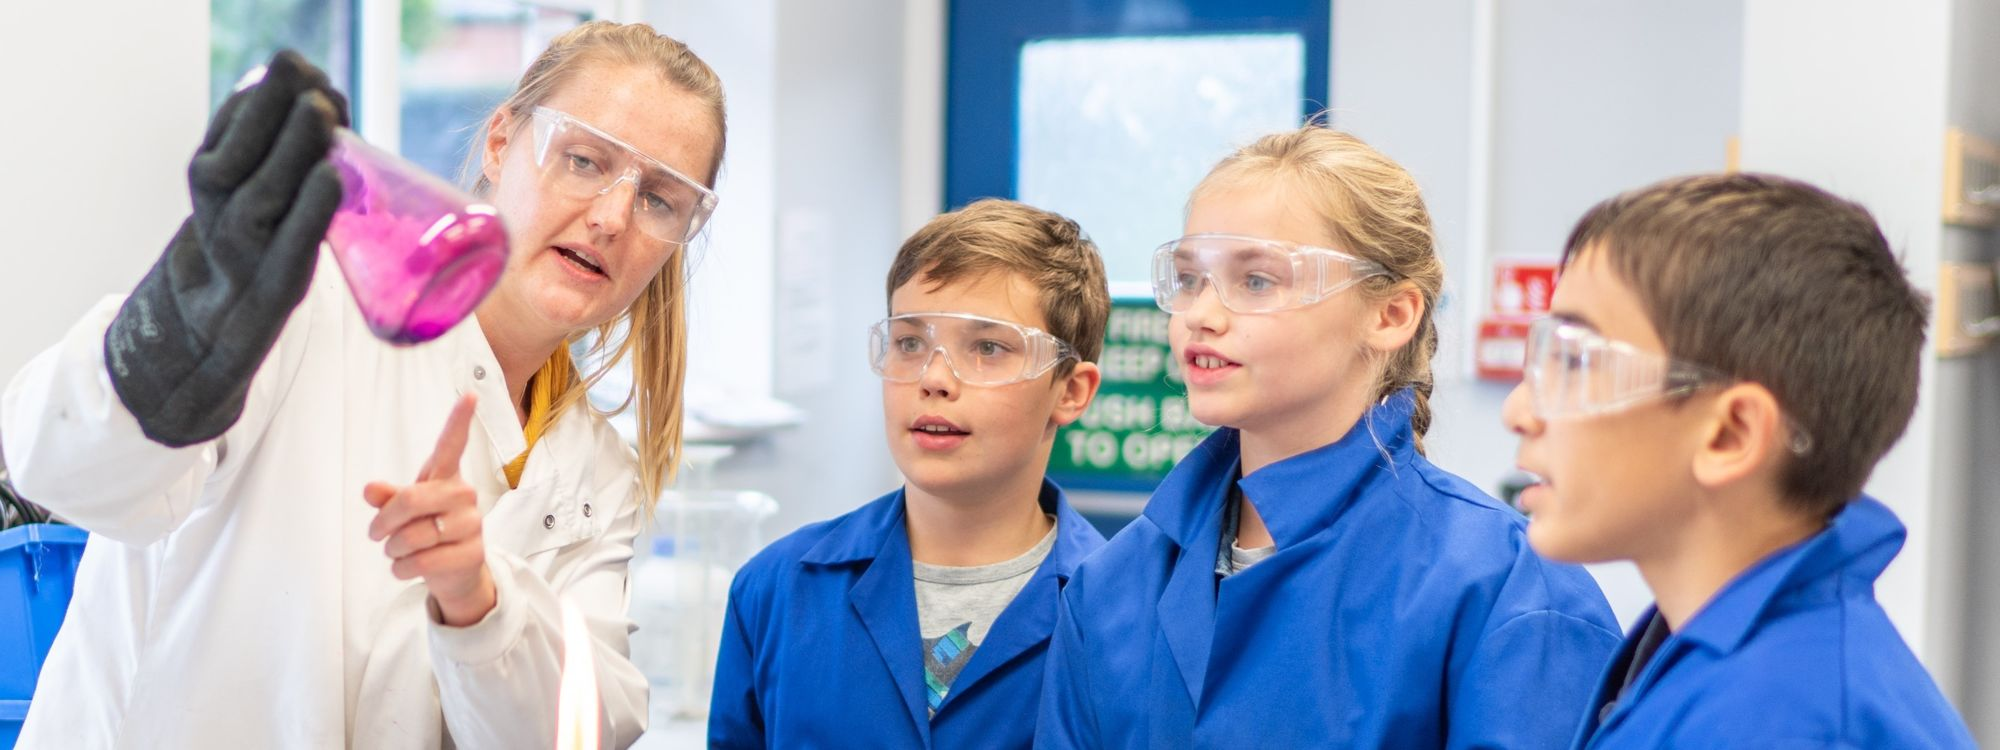 Science Header Photo cropped